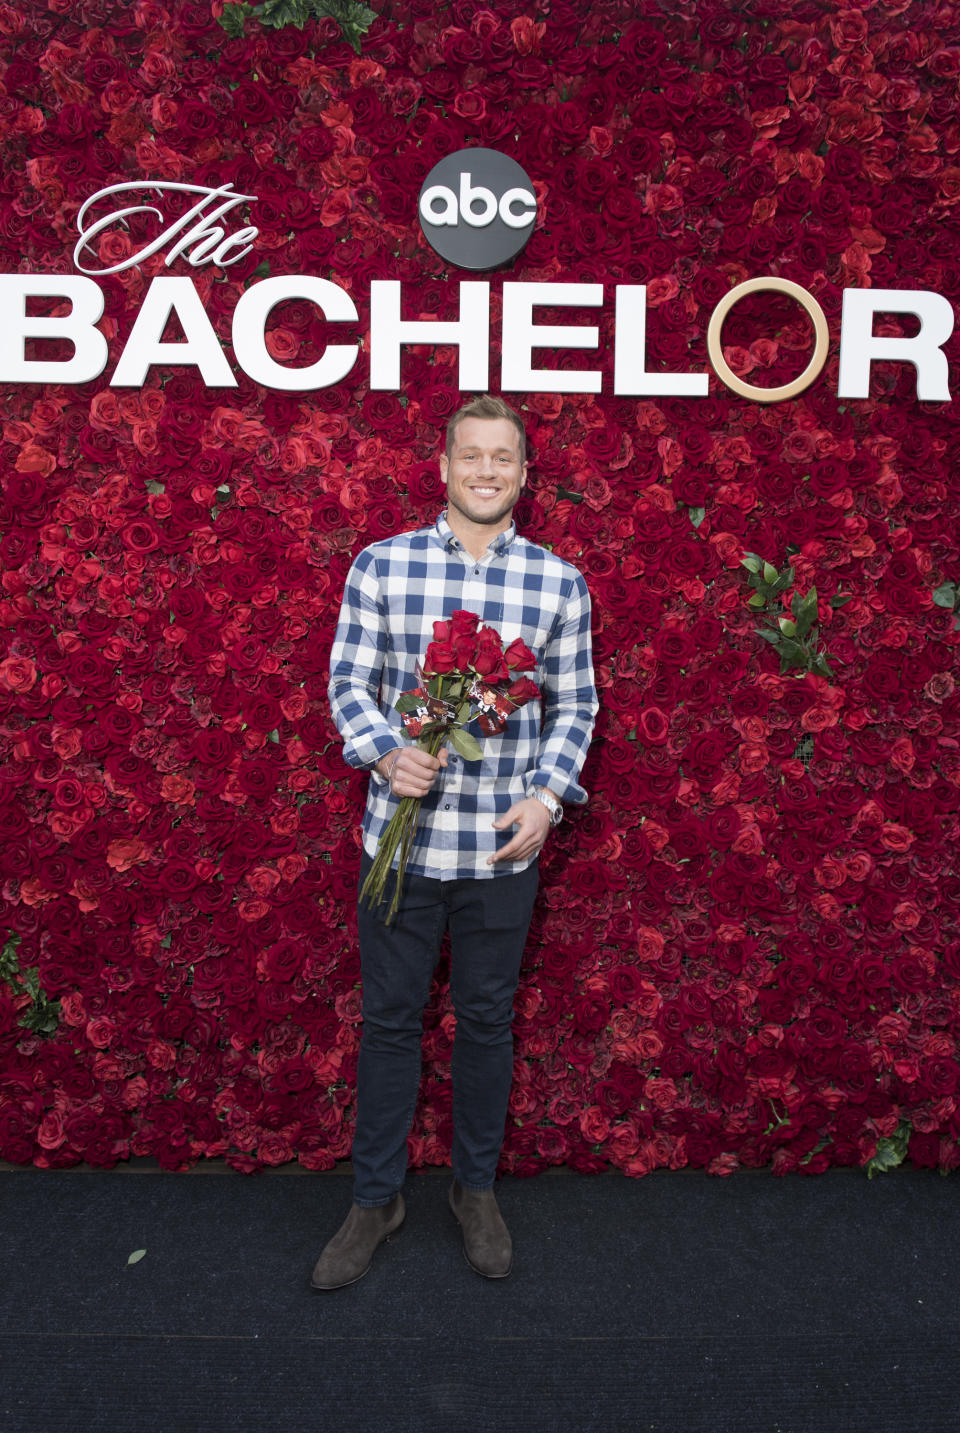 THE BACHELOR - Will you accept this rose? In celebration of tonights premiere of The Bachelor on Walt Disney Television via Getty Images, thousands of guests visiting The Grove in Los Angeles over the weekend posed for photos at a gorgeous show-inspired rose wall installation. Over ten thousand long stem roses were also distributed throughout the upscale shopping destination. Bachelor Colton Underwood made a surprise appearance at the rose wall, delighting a swarm of unsuspecting fans waiting to take their photo. Other Bachelor Nation alumni also made appearances throughout the weekend, including Wells Adams, Eric Bigger, Wills Reid, Krystal Nielson, Chris Randone, Jade and Tanner Tolbert, and Annaliese Puccini. Be sure to watch Coltons journey for love unfold, starting tonight at 8|7c on Walt Disney Television via Getty Images. (Aaron Poole via Getty Images) COLTON UNDERWOOD